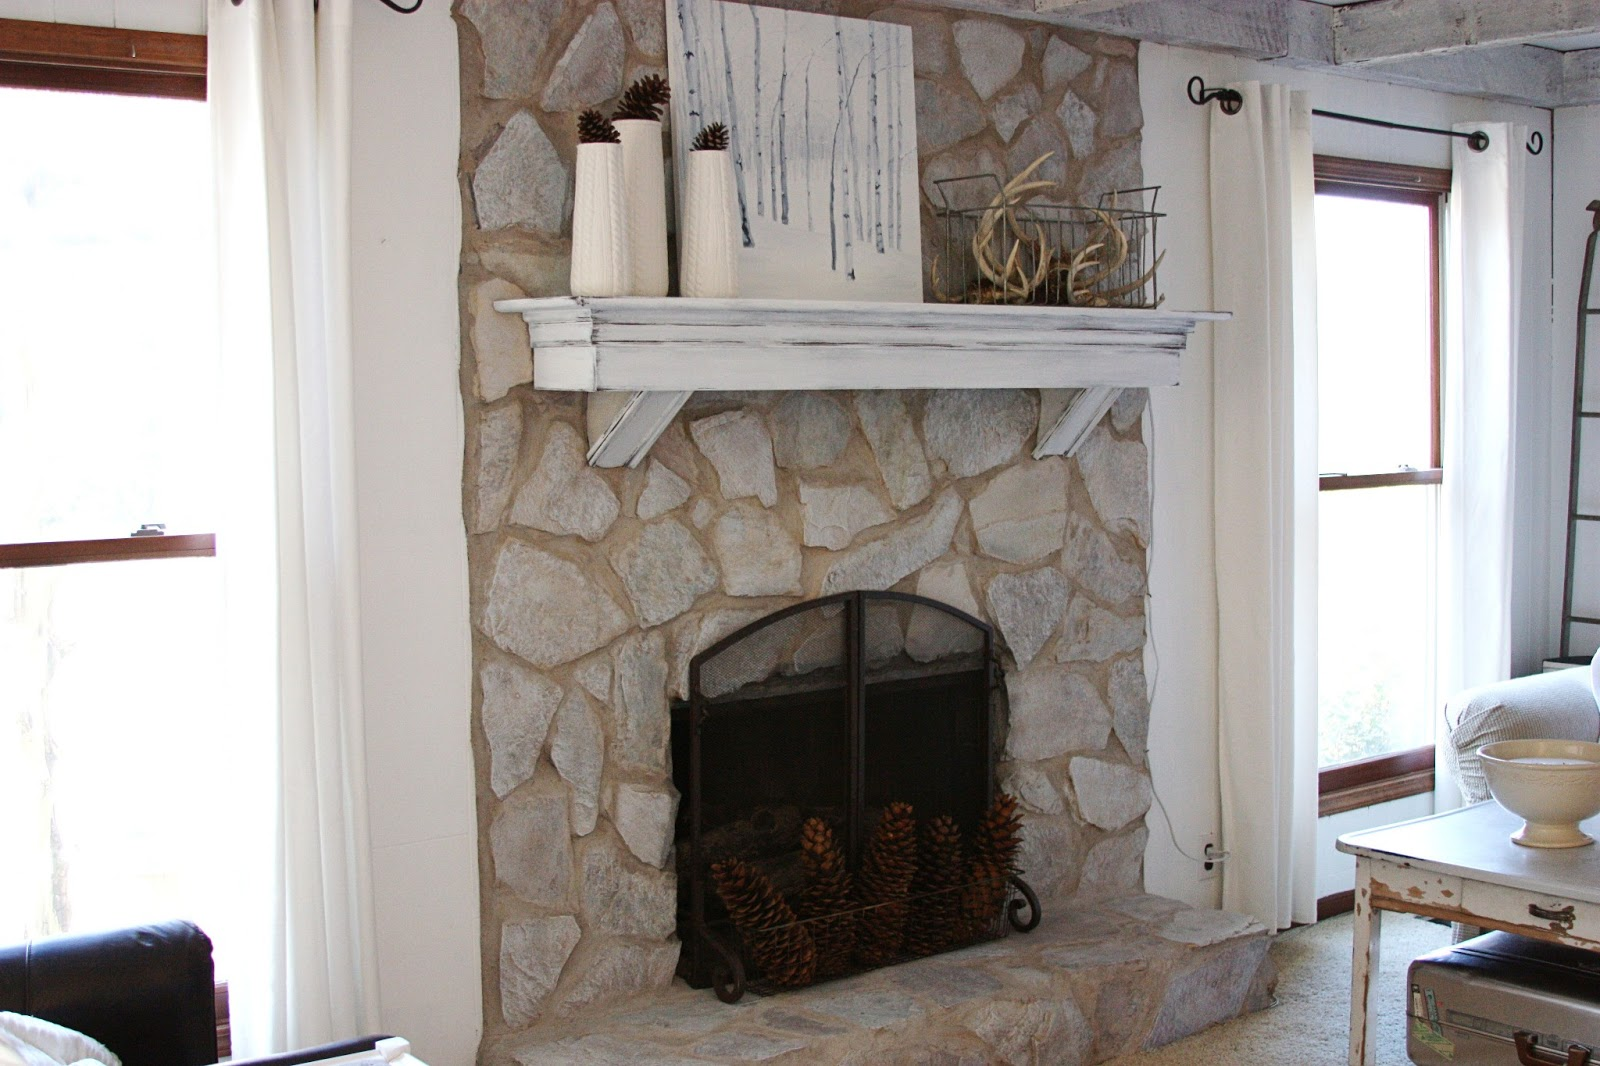 Painting Over Fireplace Erin 39s Art And Gardens Painted Stone Fireplace Before And